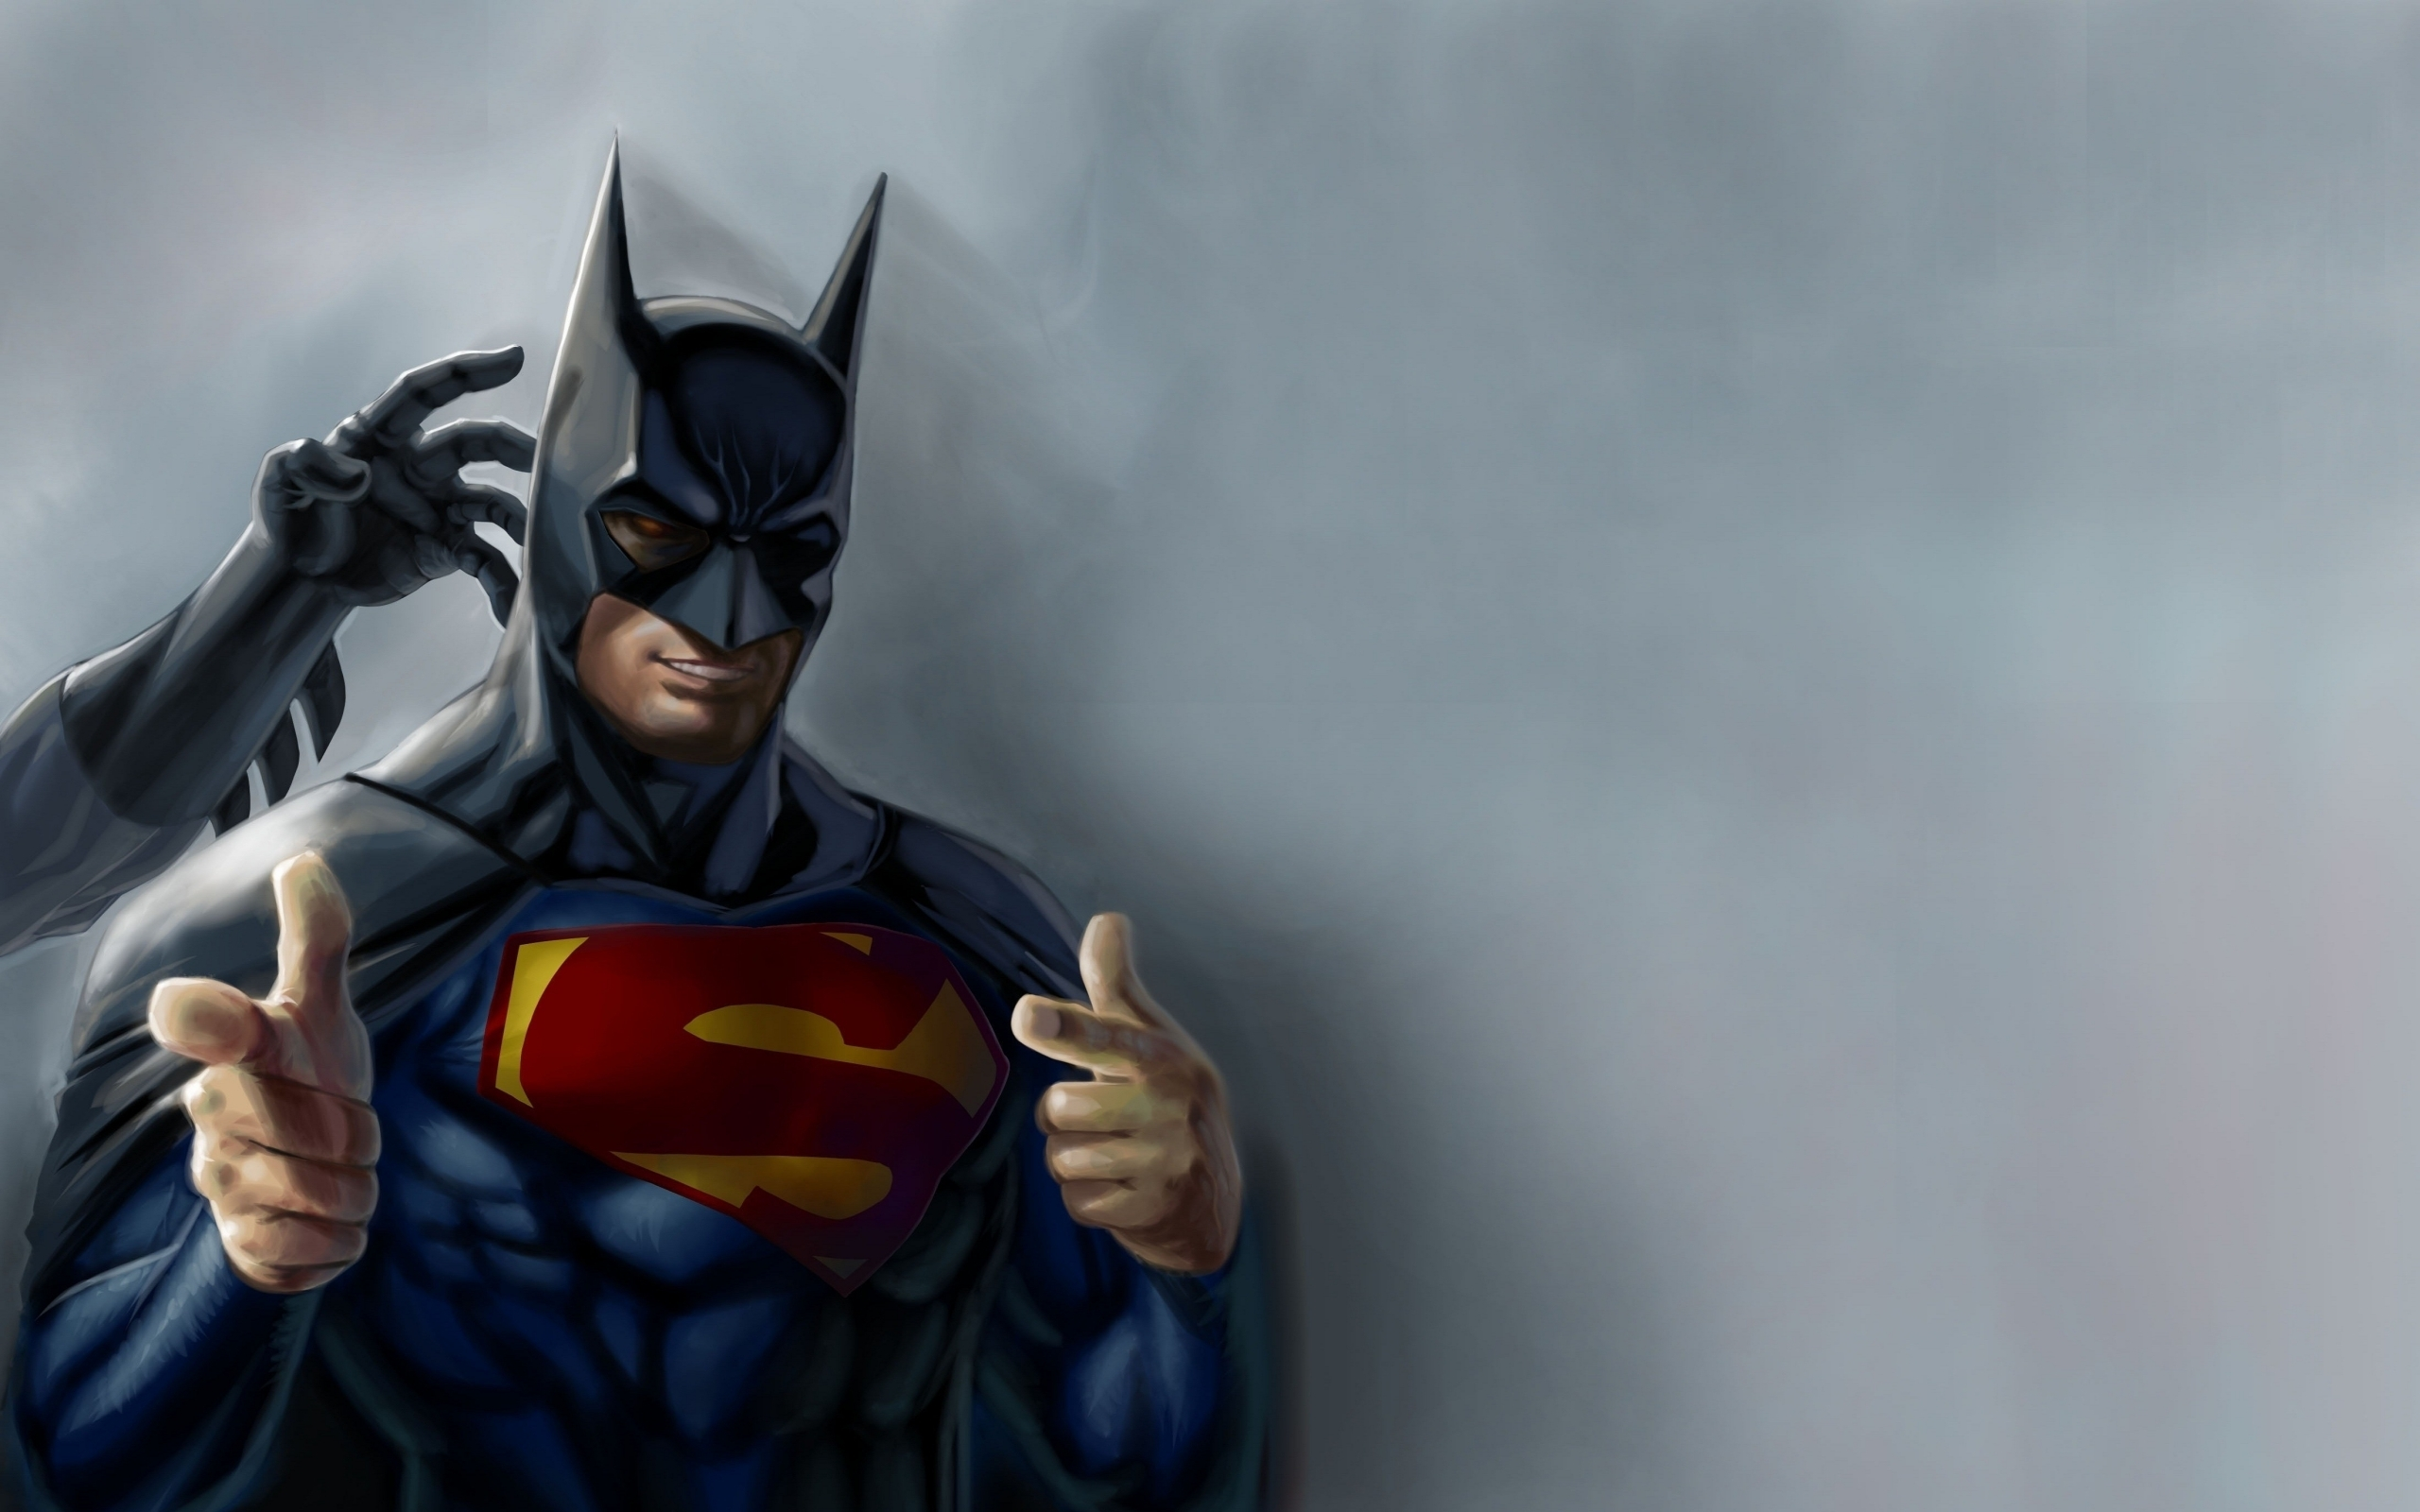 Heroes comics Batman hero supeman humor funny superhero wallpaper 2560x1600